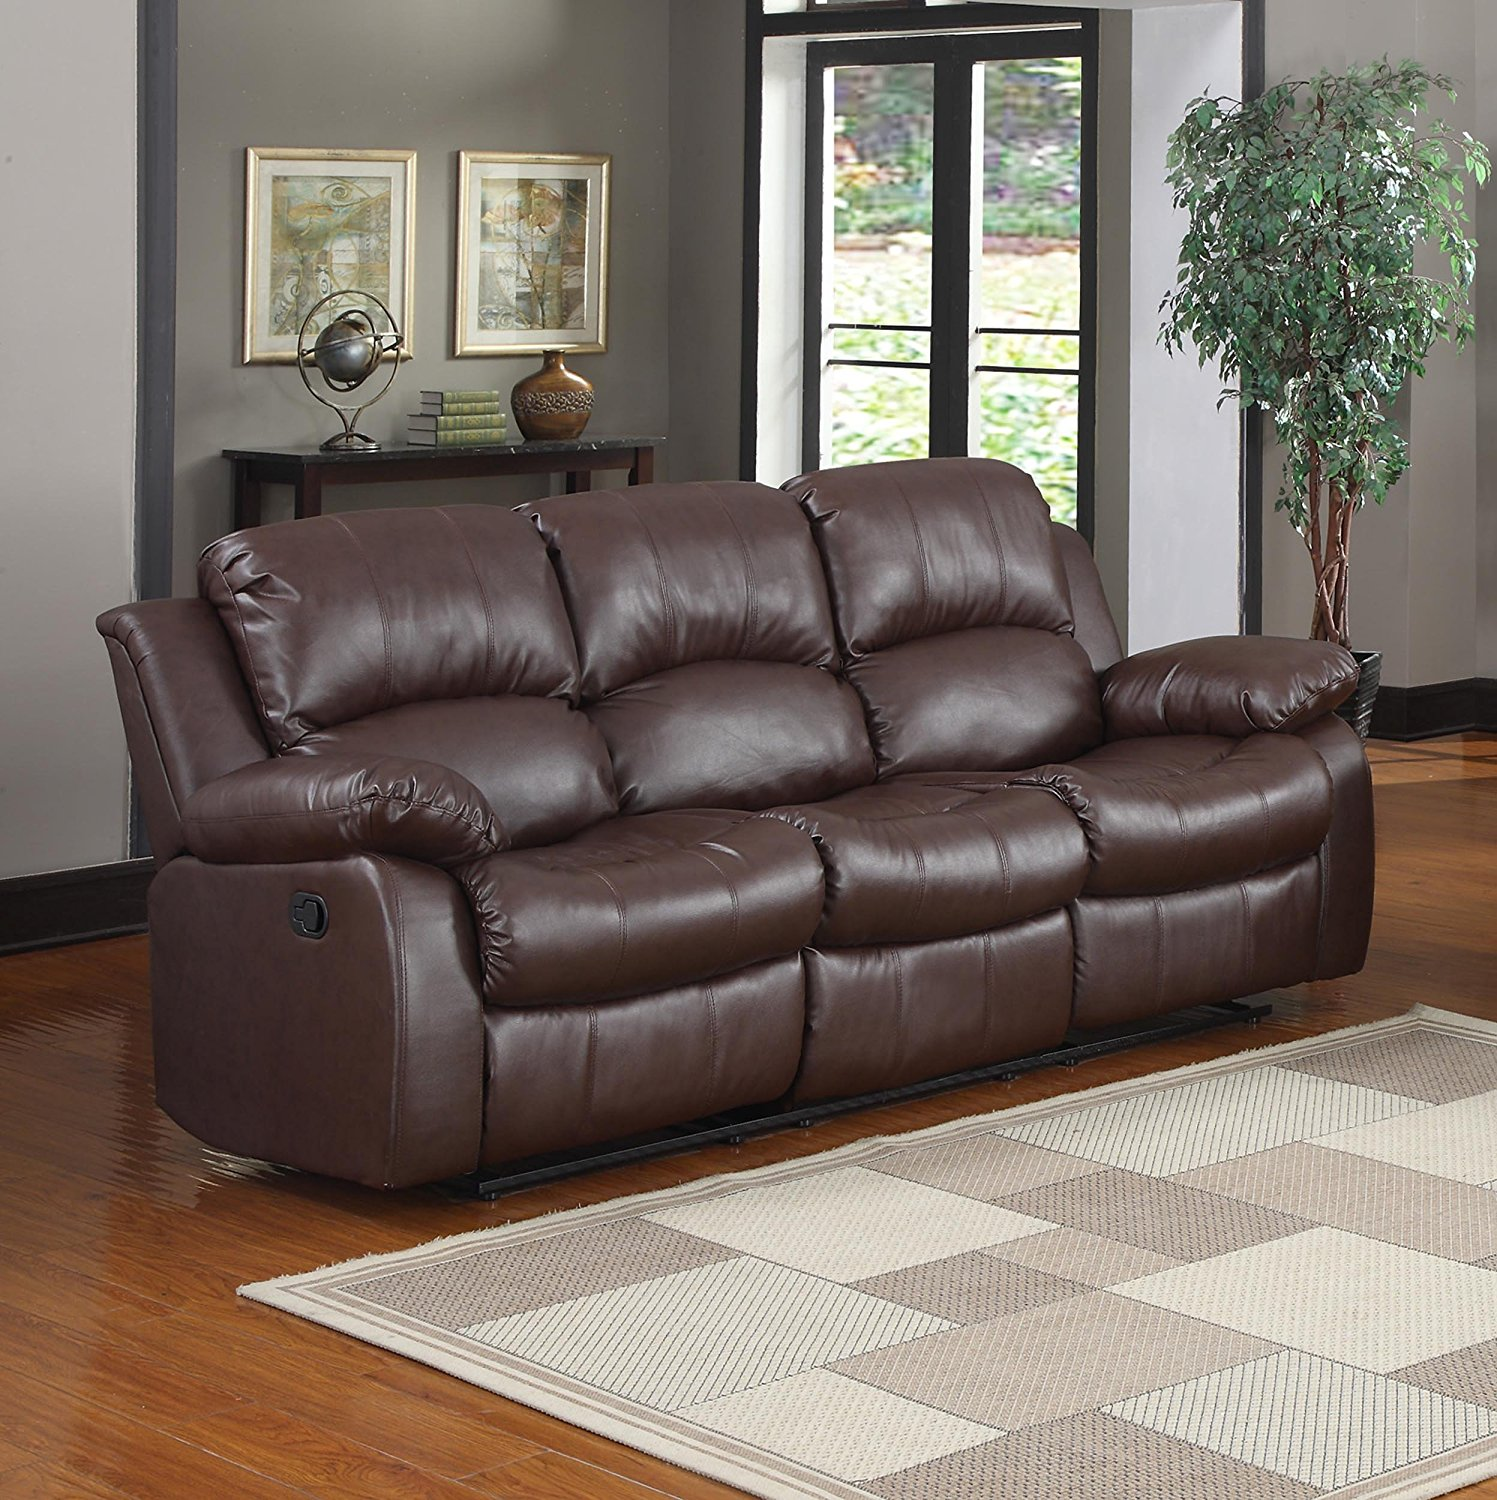 Best Reclining Leather Sofa Reviews Best Leather Reclining Sofas Review In 2018 Amatop10 Thesofa